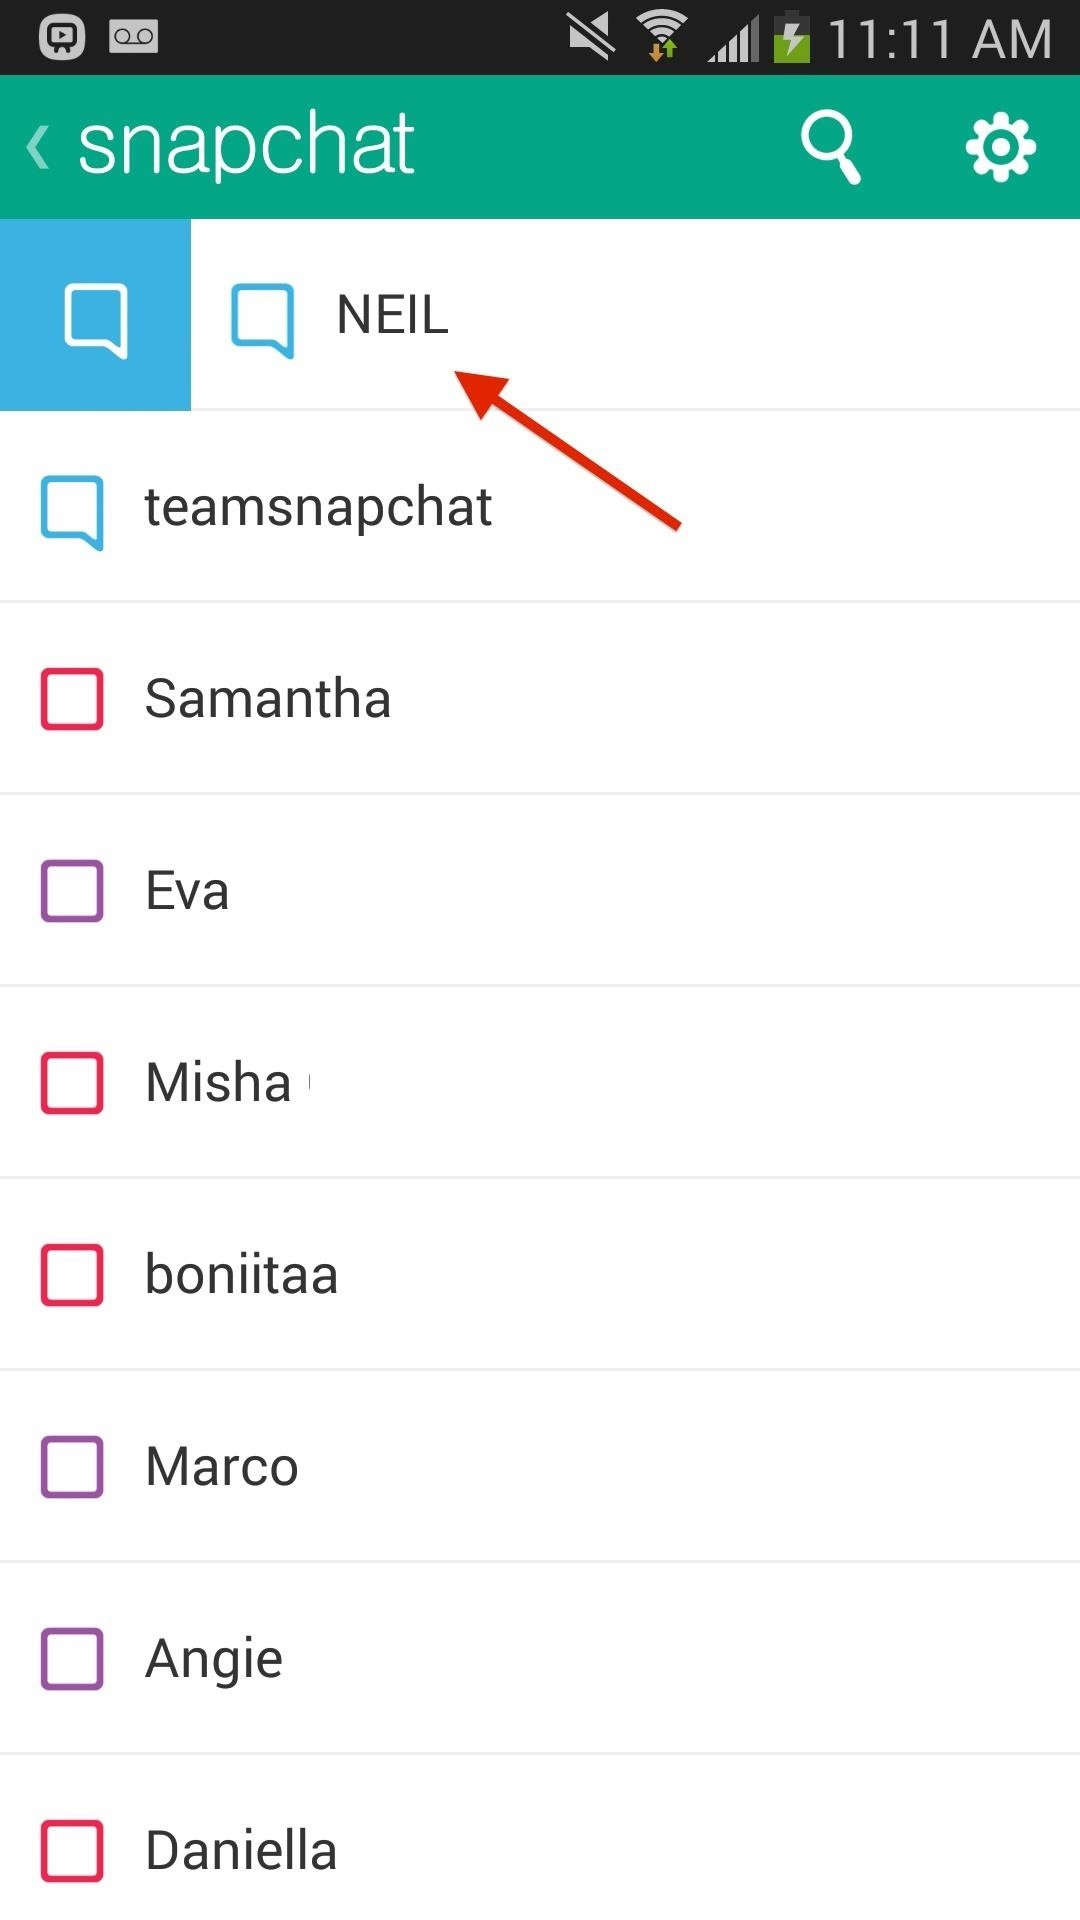 Snapchat Sees Major Update with Temporary Chat Messages & Live Video Chatting